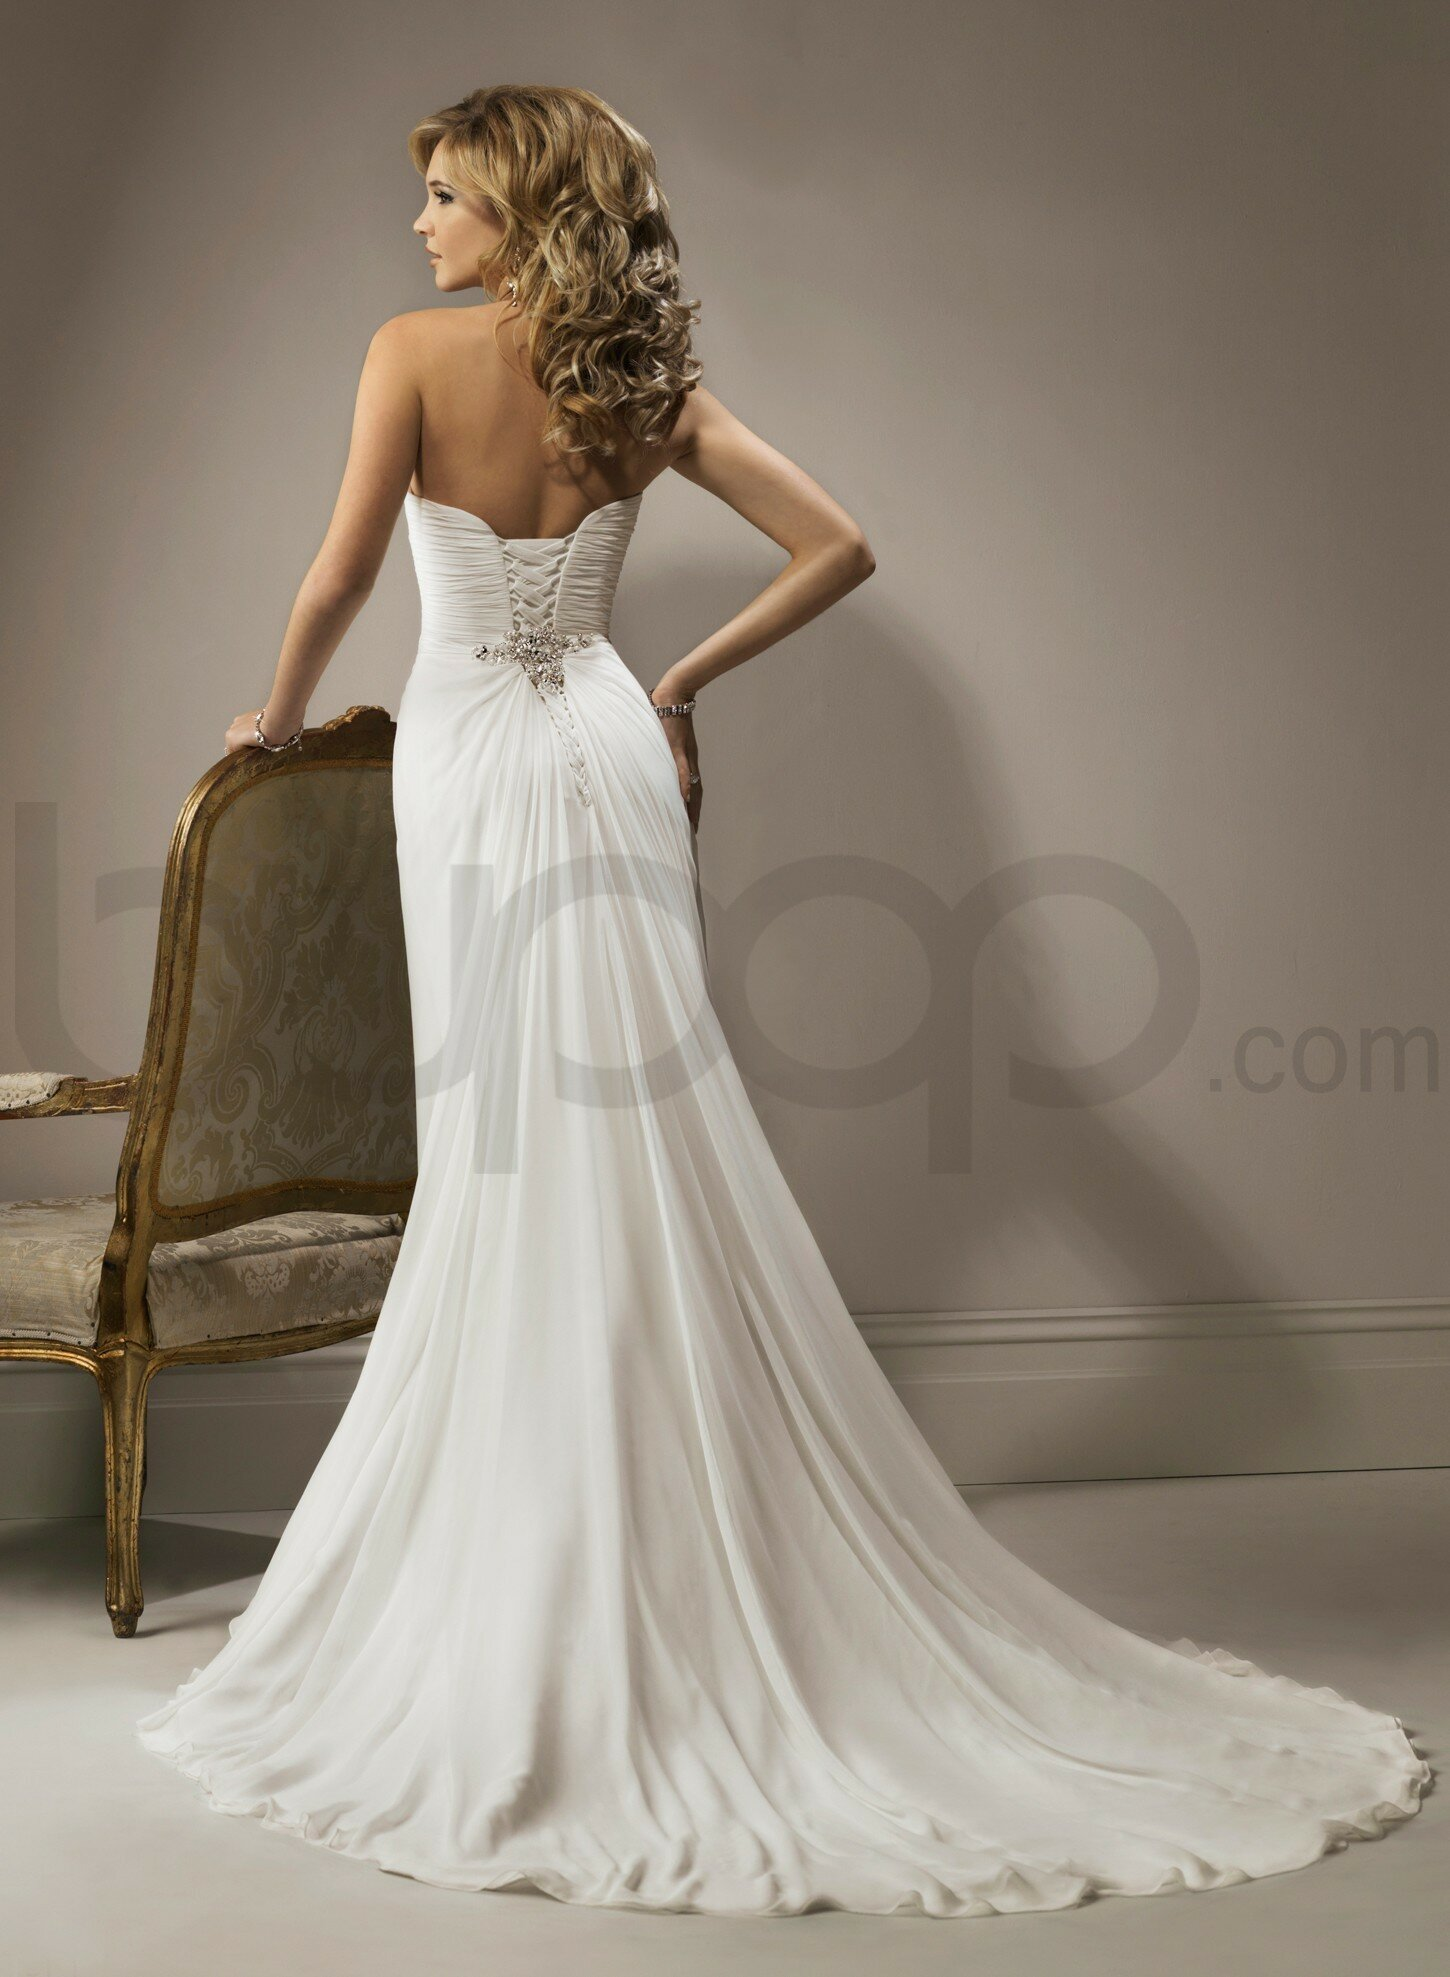 A line sweetheart wedding dresses photo 1 browse for A line wedding dresses sweetheart neckline